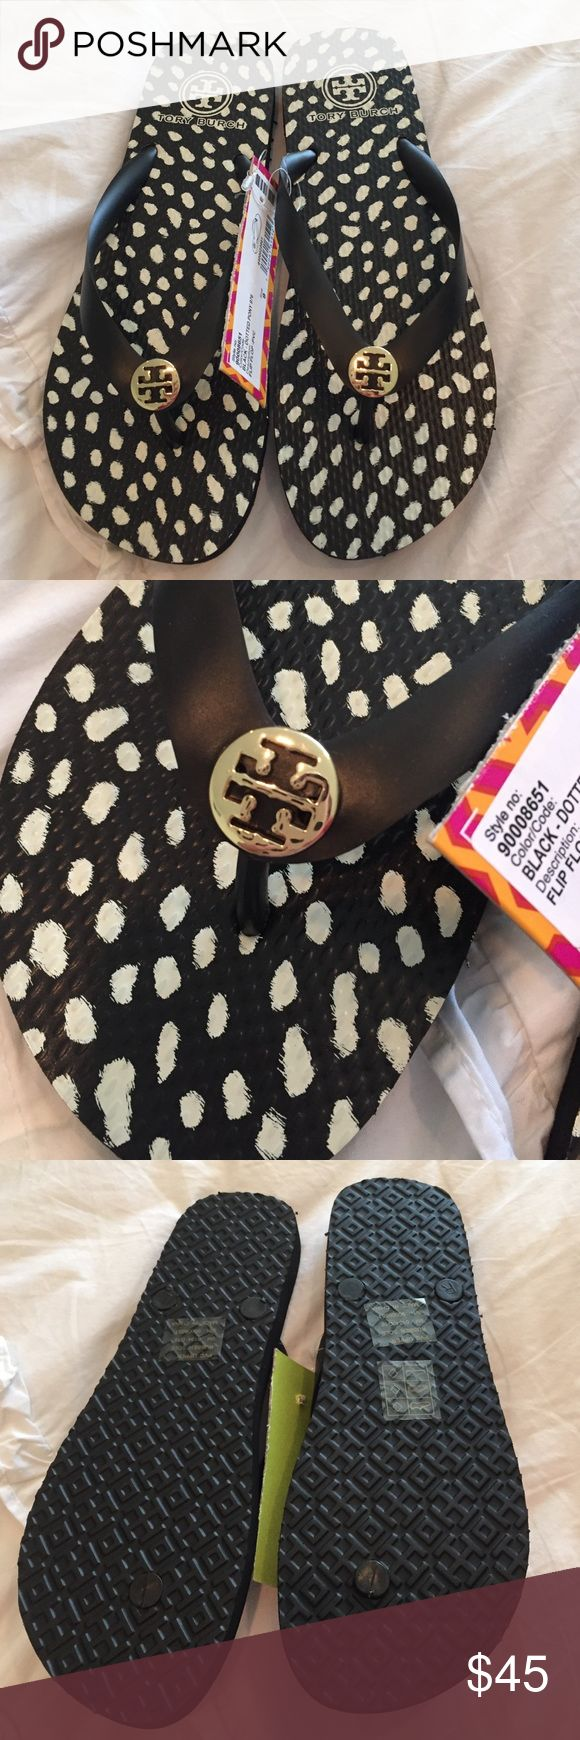 Tory Burch dotted pony flip flops NWT black and white flip flops. No box. Tory Burch Shoes Sandals